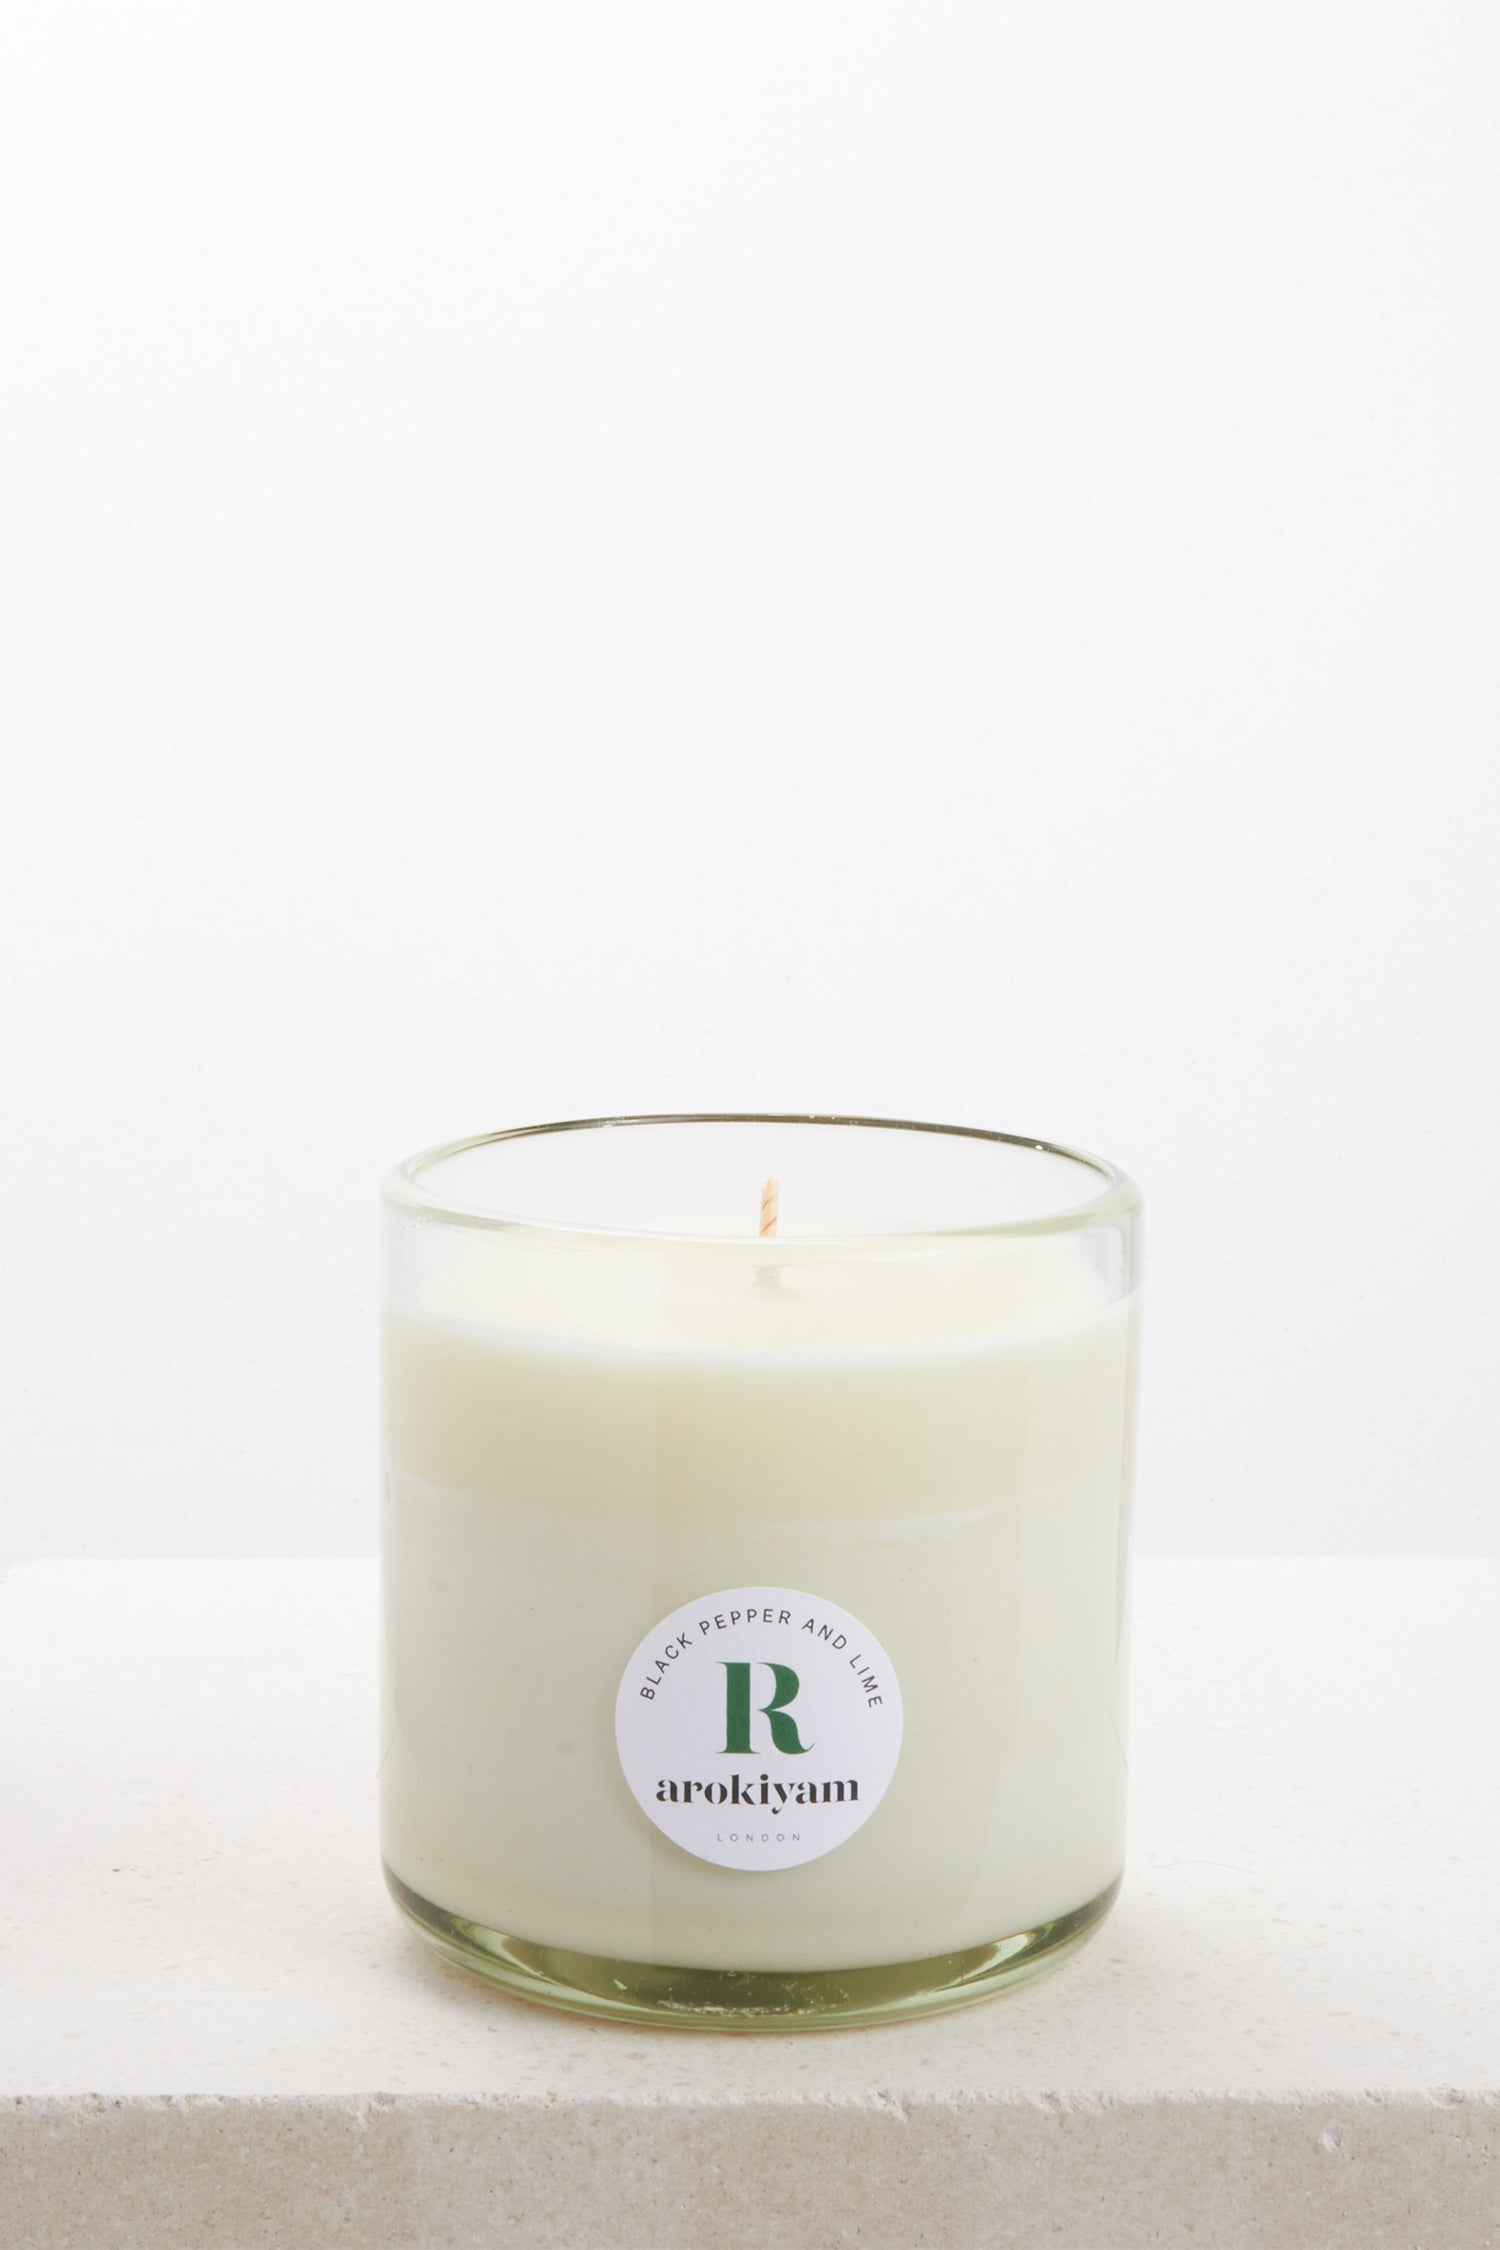 Vegan candle made from a coconut and soy wax and scented with natural black pepper and lime. Made in London.